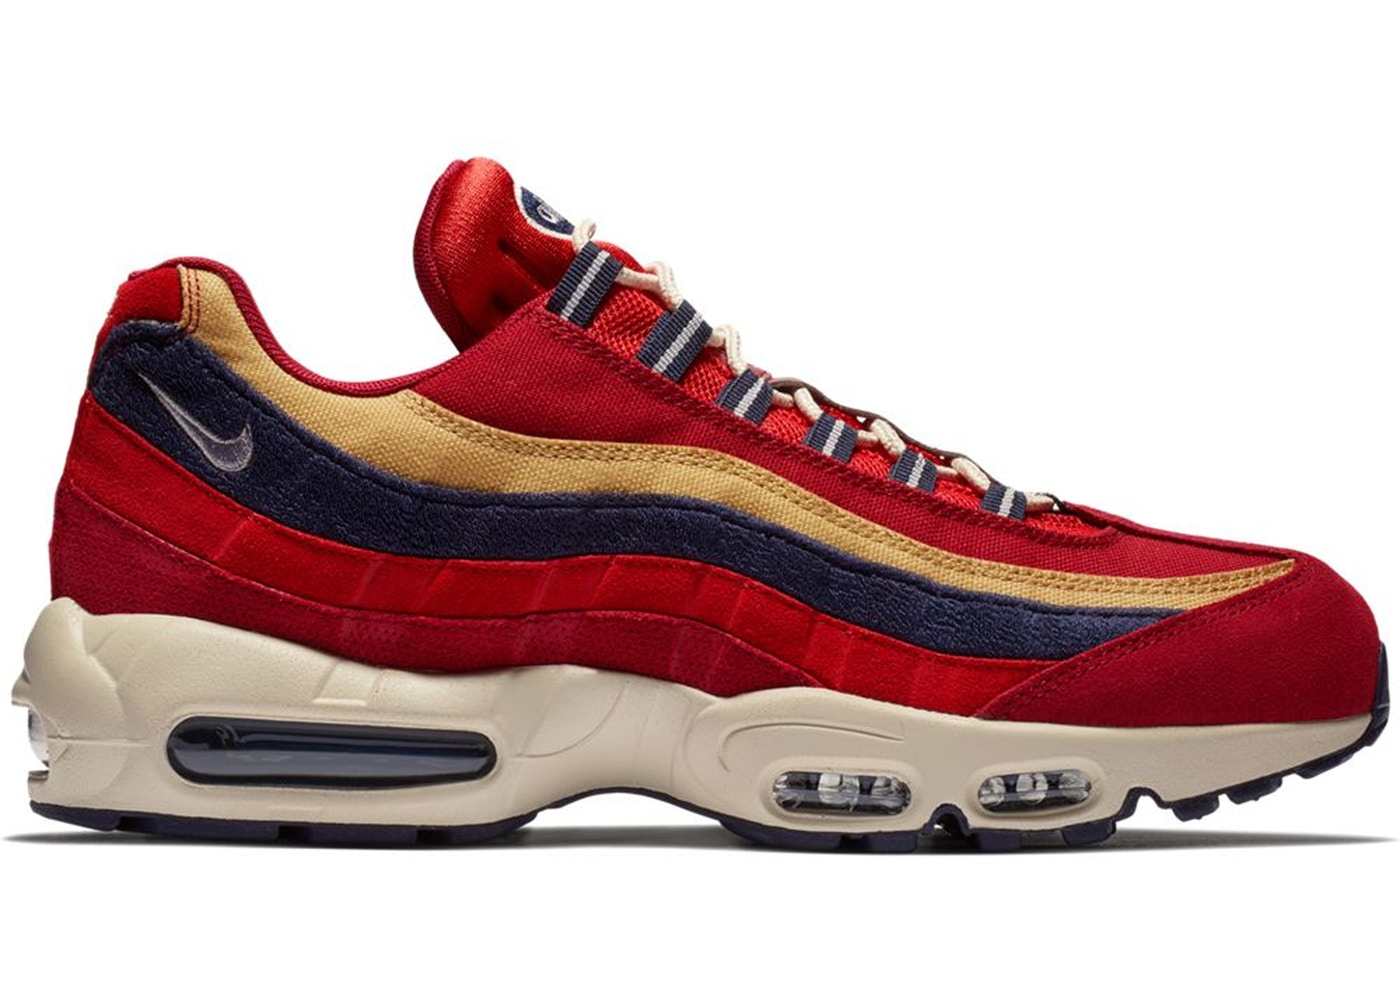 new style 73524 e7d3e Sell. or Ask. Size 6. View All Bids. Air Max 95 Red ...